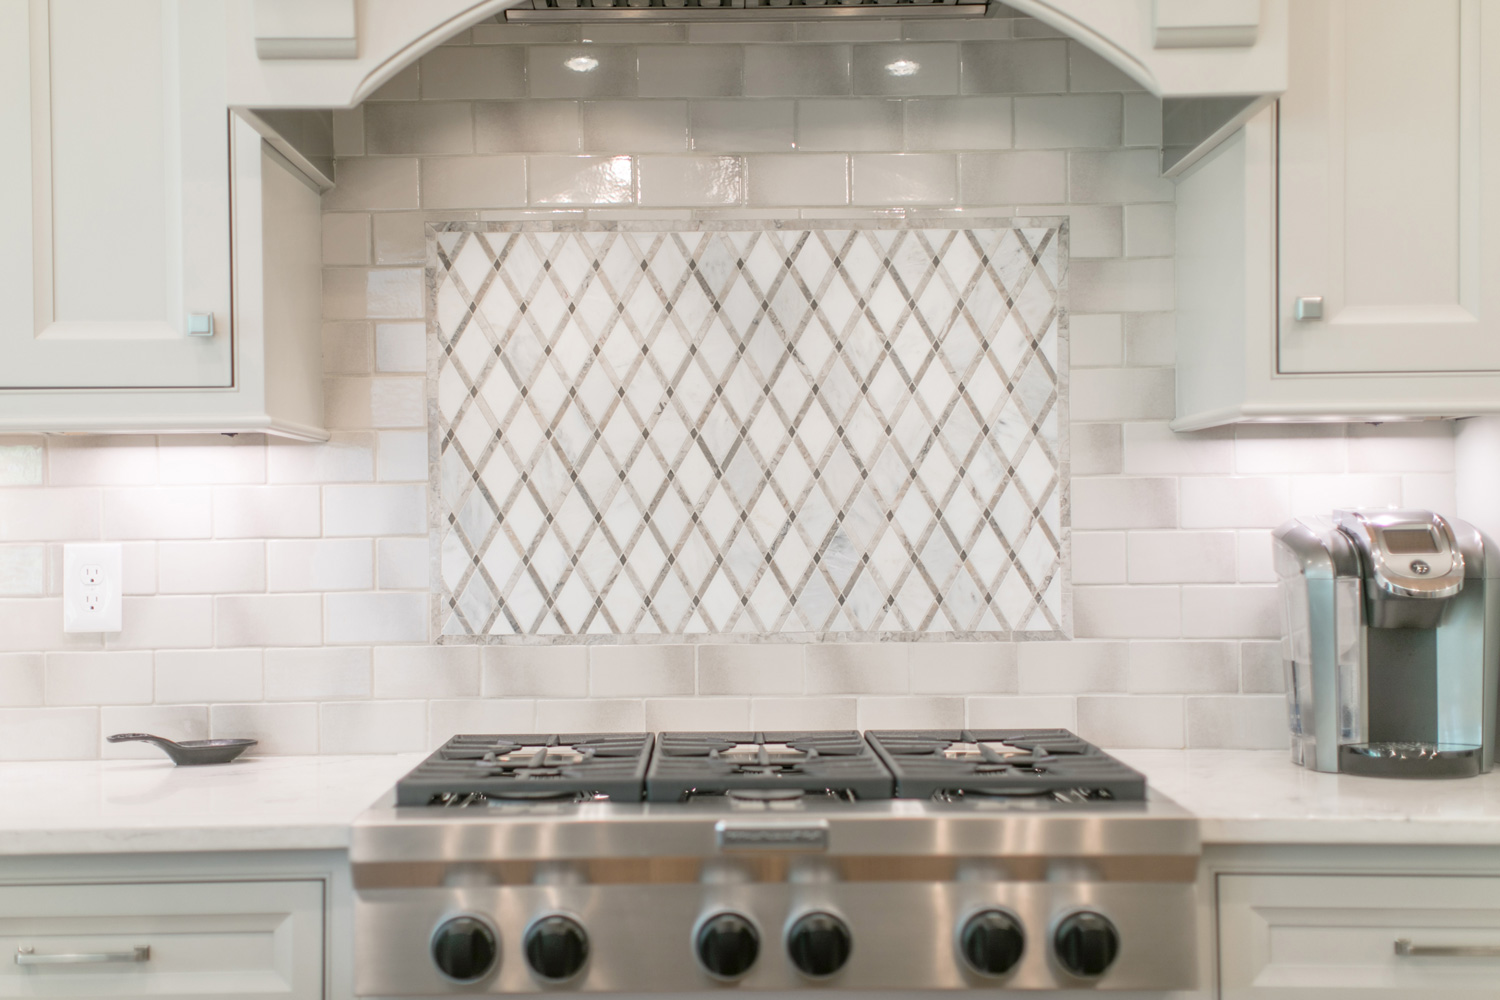 Kitchen backsplash design for a remodel